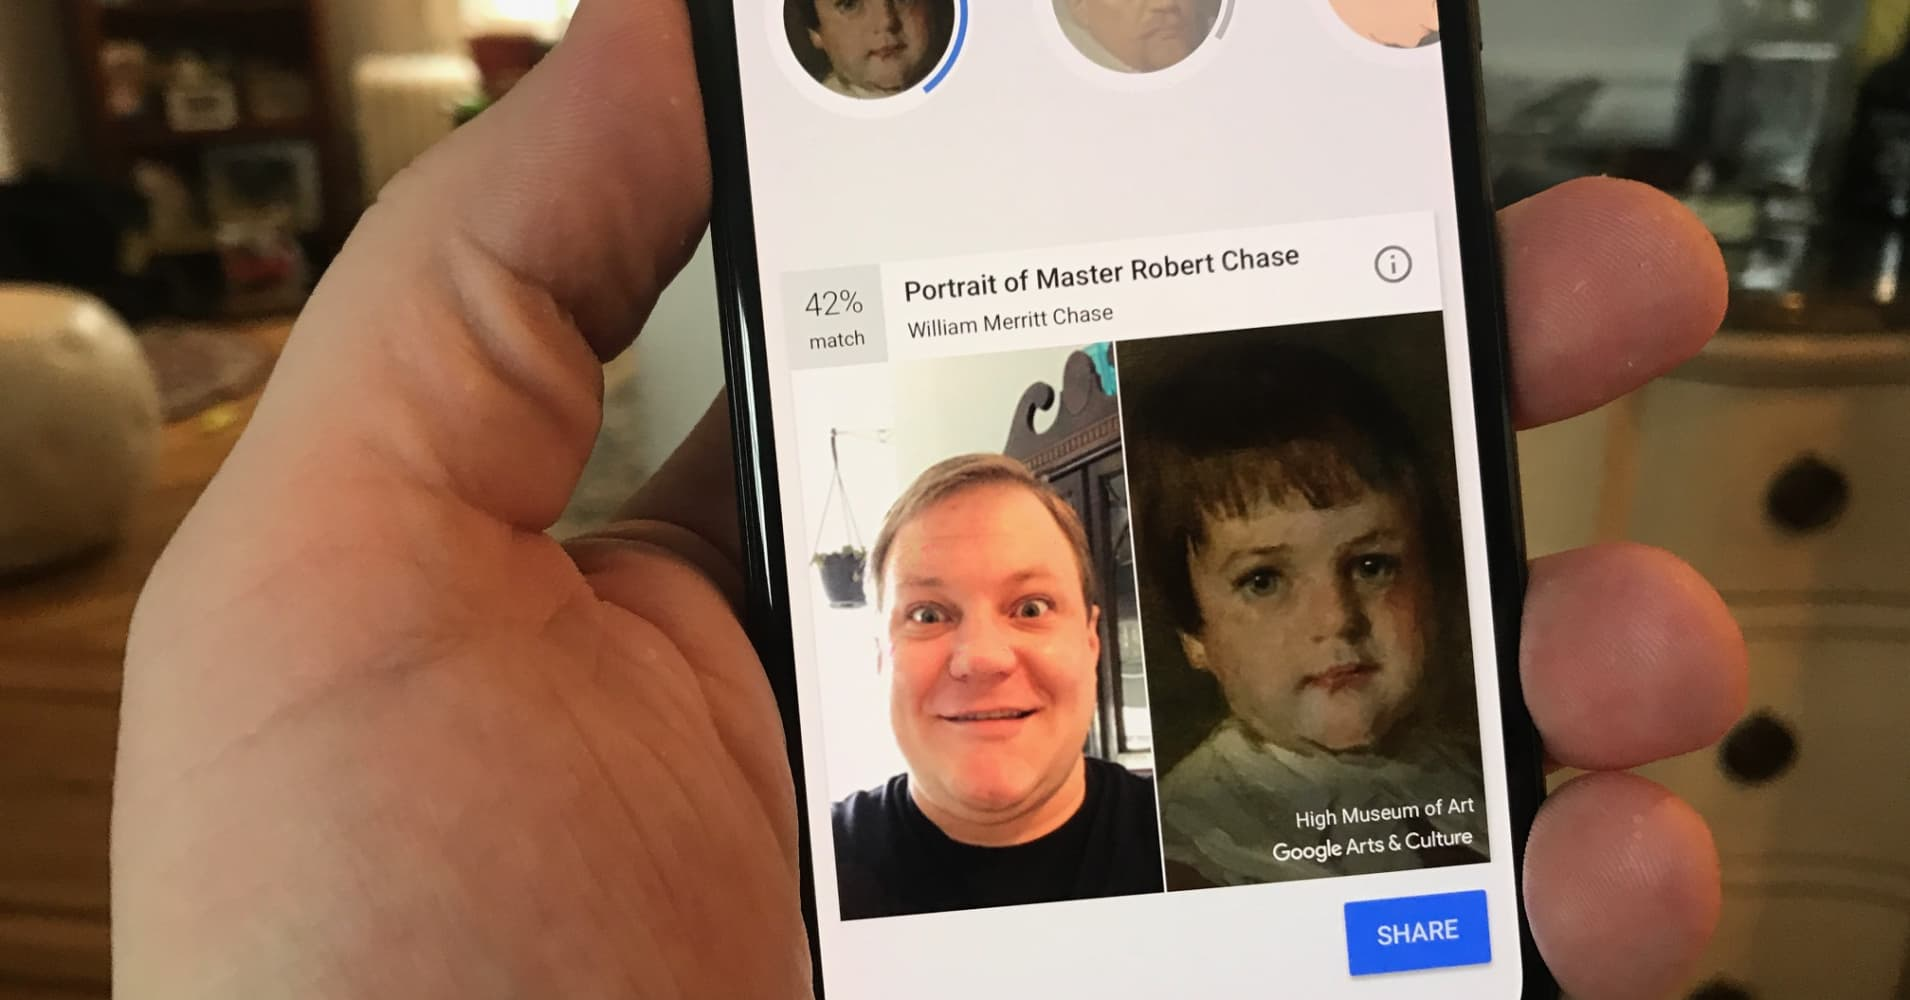 How to use the new Google app that matches your face with paintings